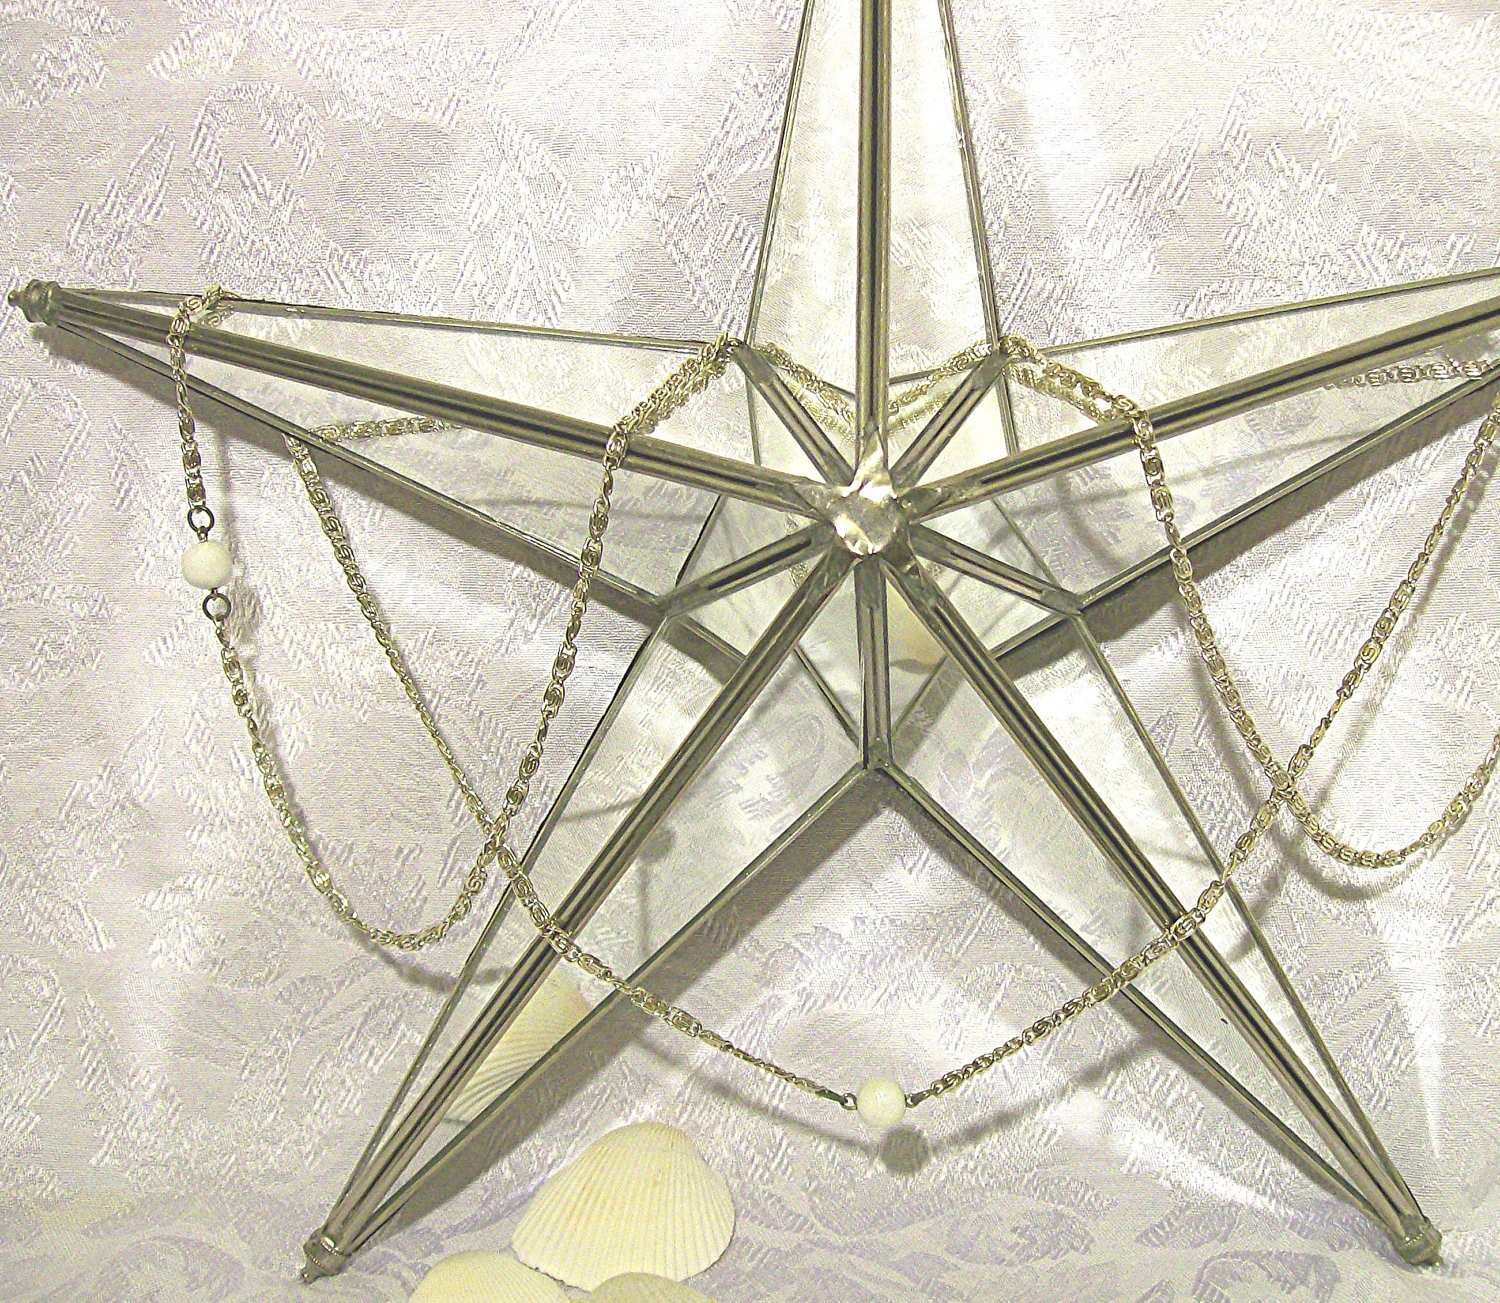 Mirrored Star Wall Decor Lovely Funky Mirrored Stars Wall Mold Home Design Ideas and Inspiration